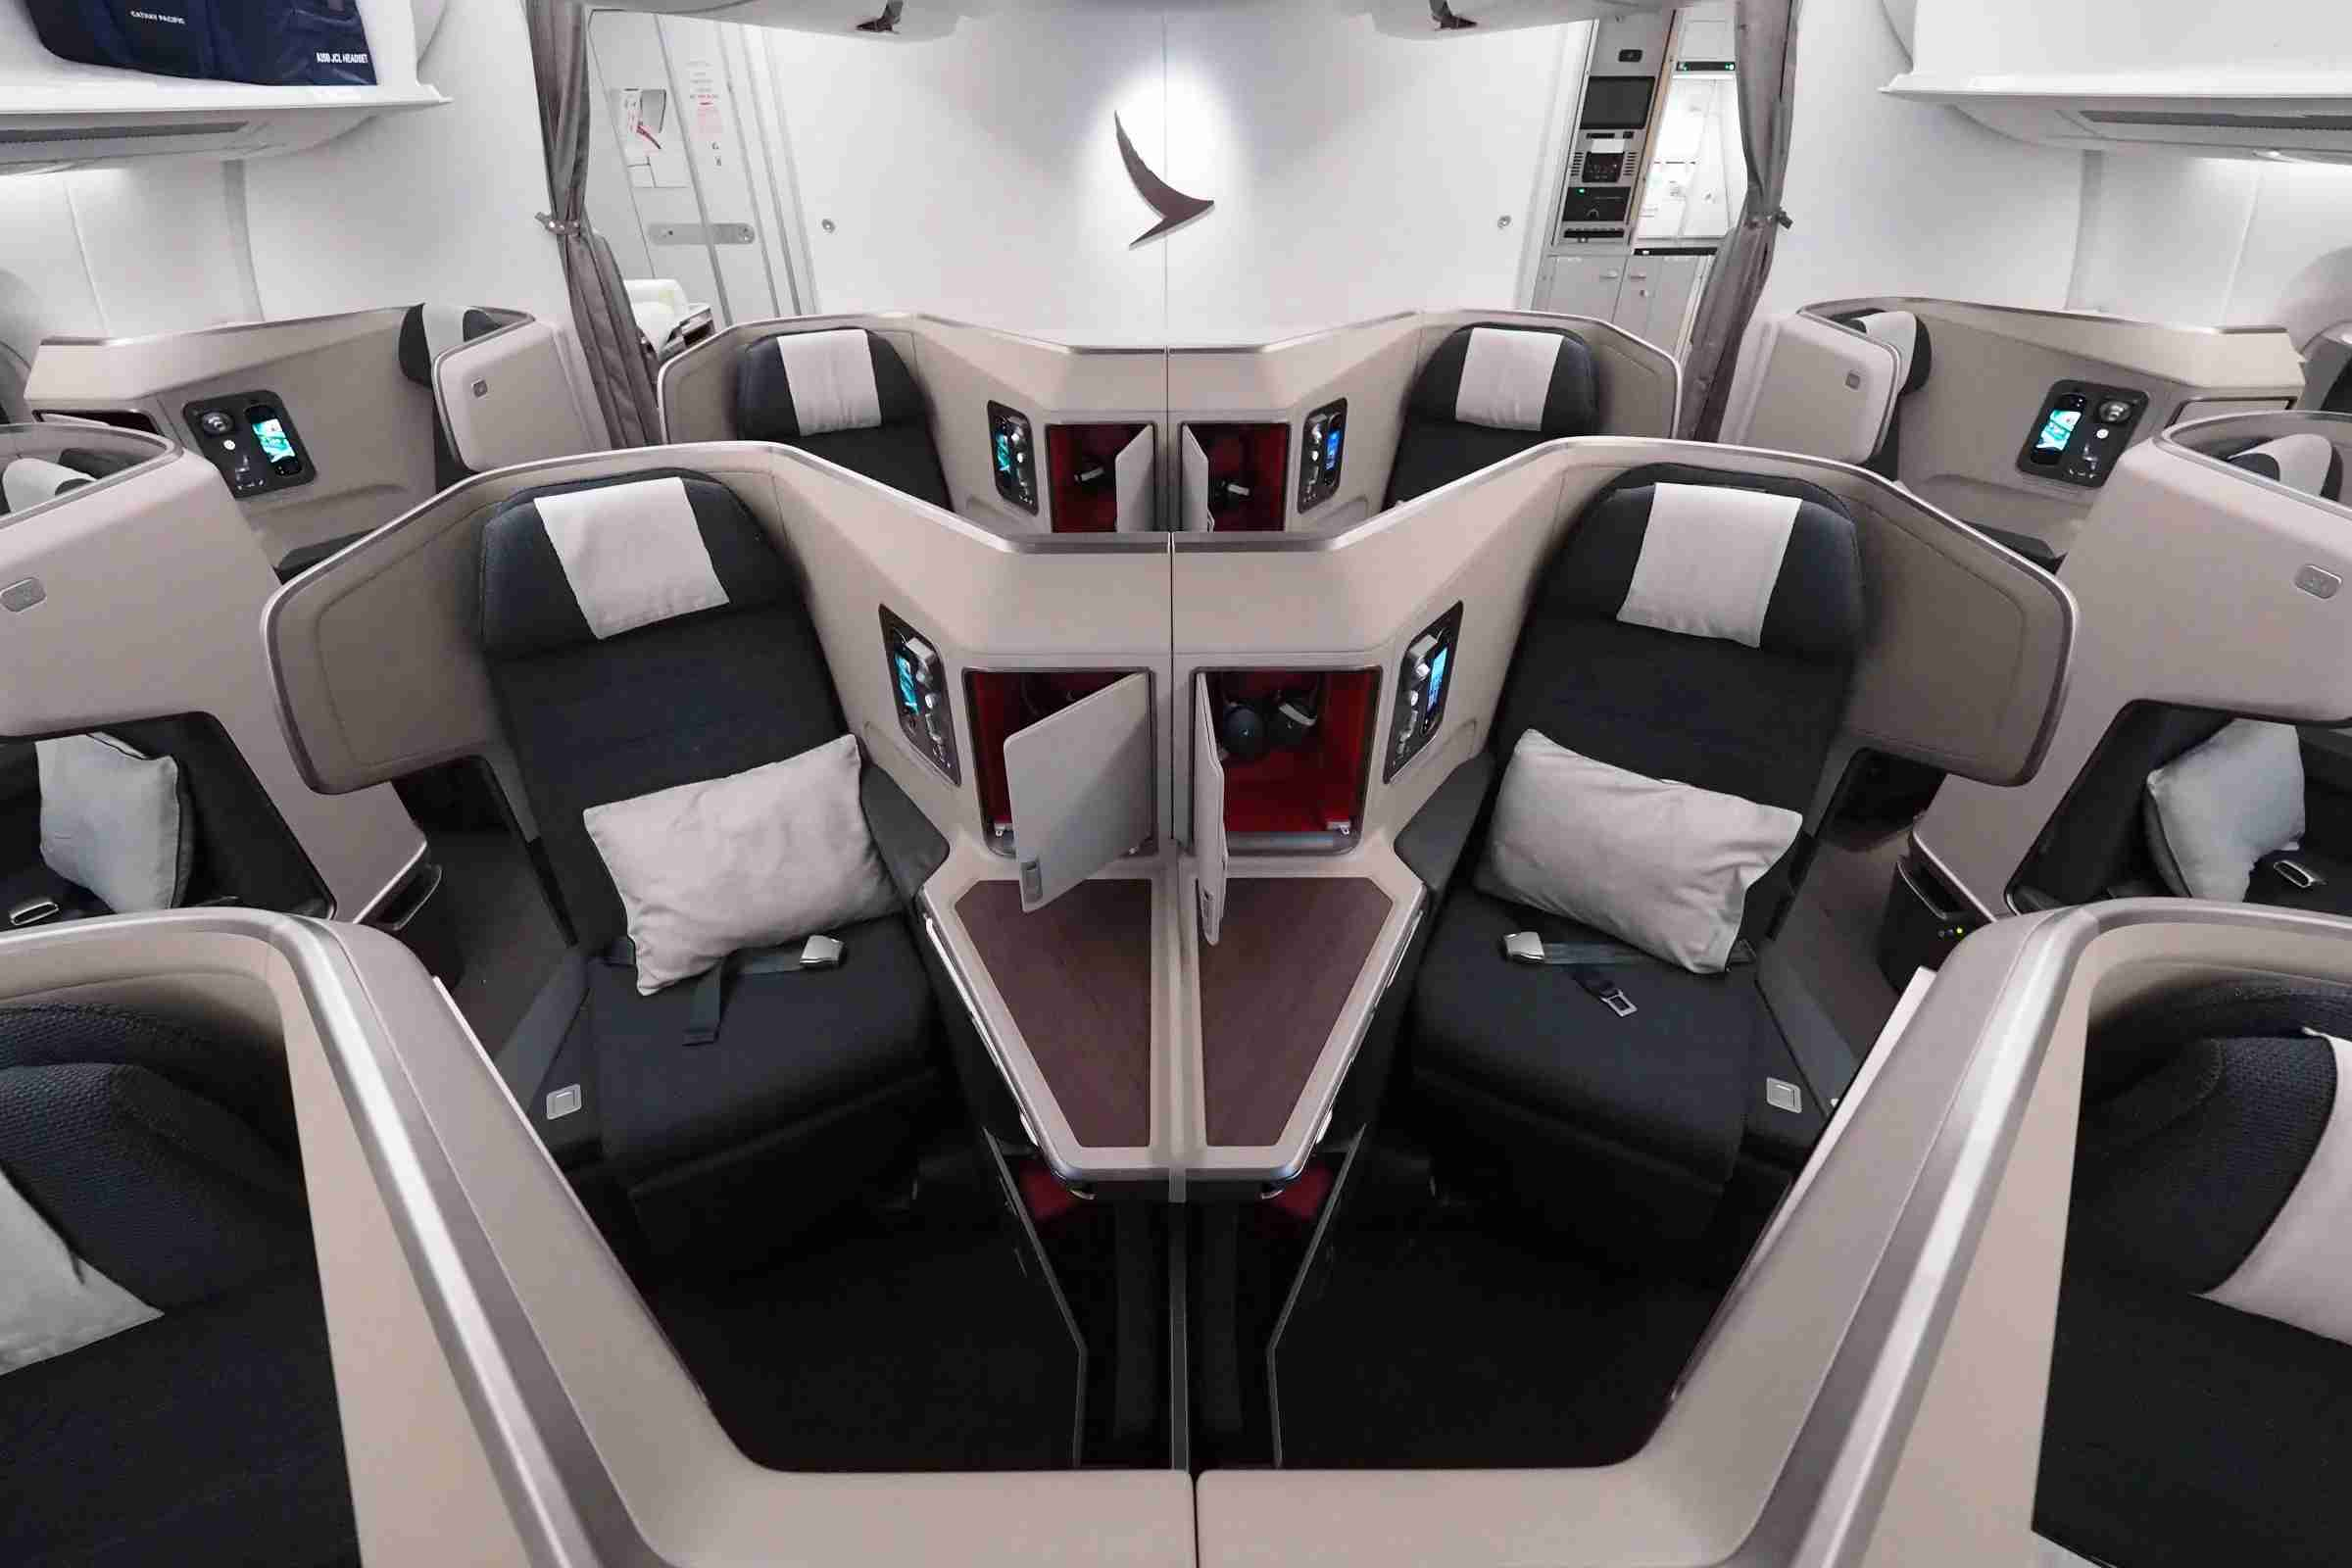 Use American AAdvantage miles for excellent partner redemptions, such as Cathay Pacific business class.